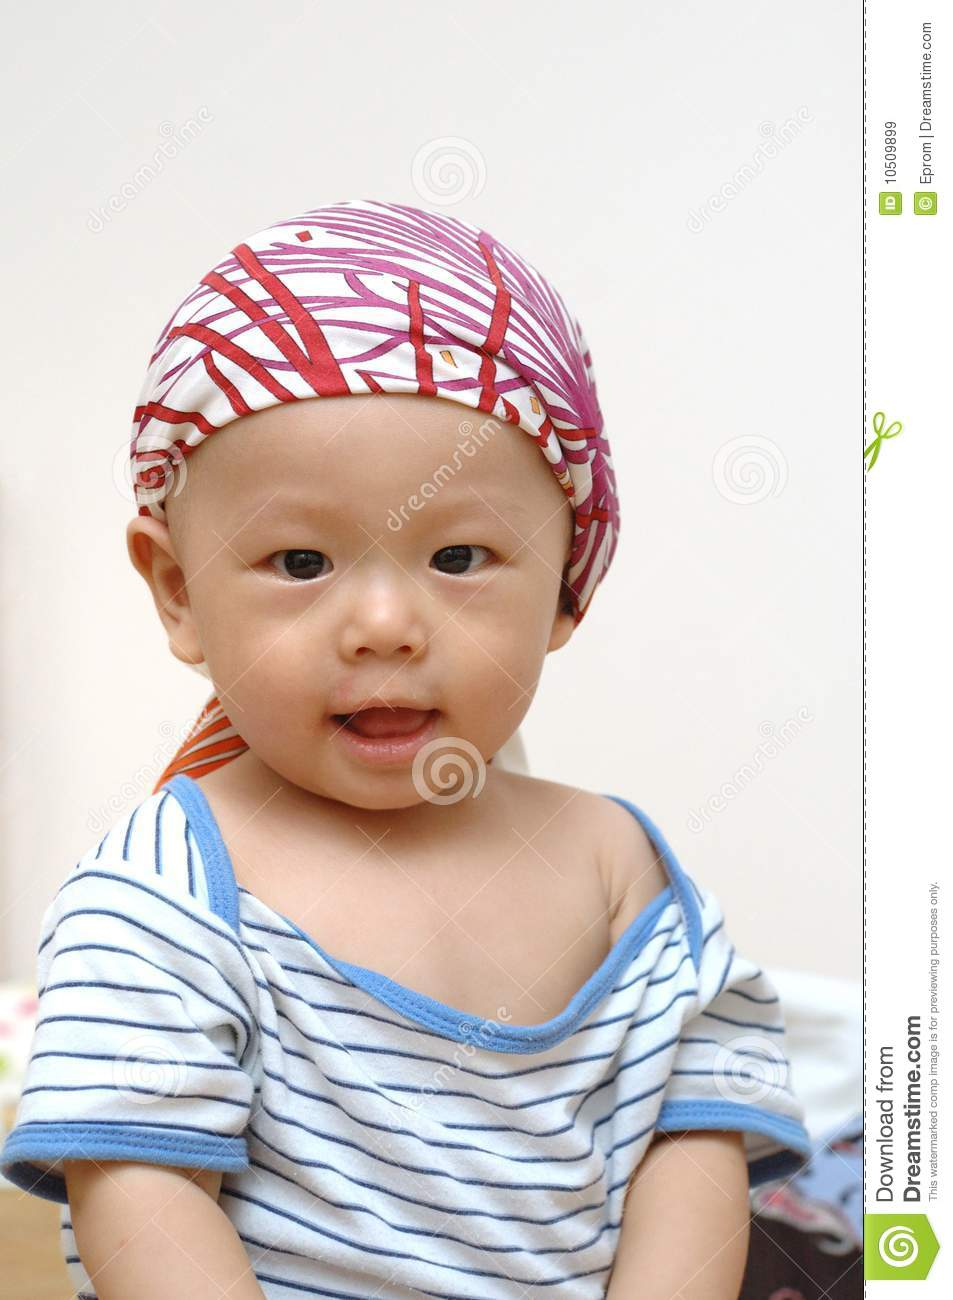 portrait of cute baby - photo #23